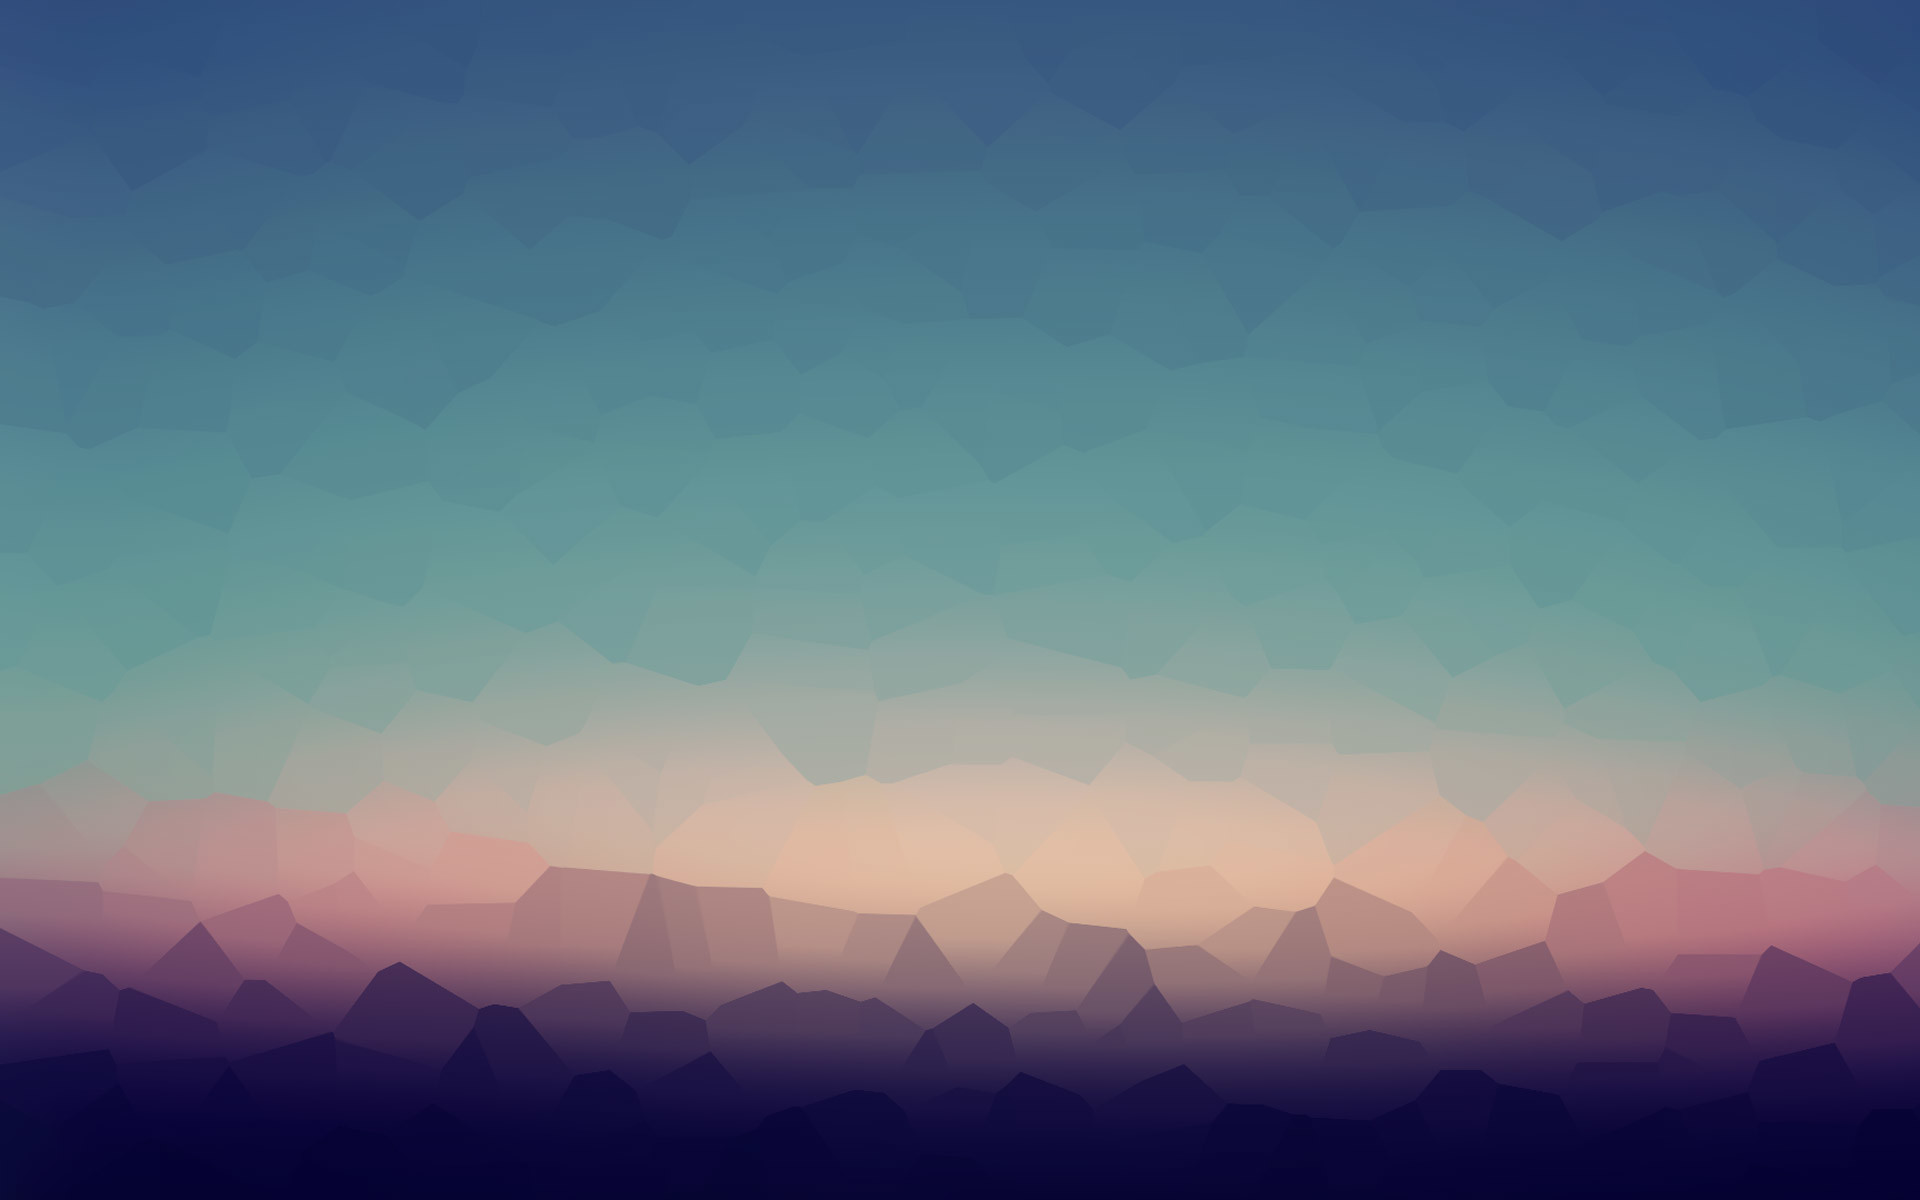 Old iPhone Wallpapers IOS 6 by Richard Solares #5